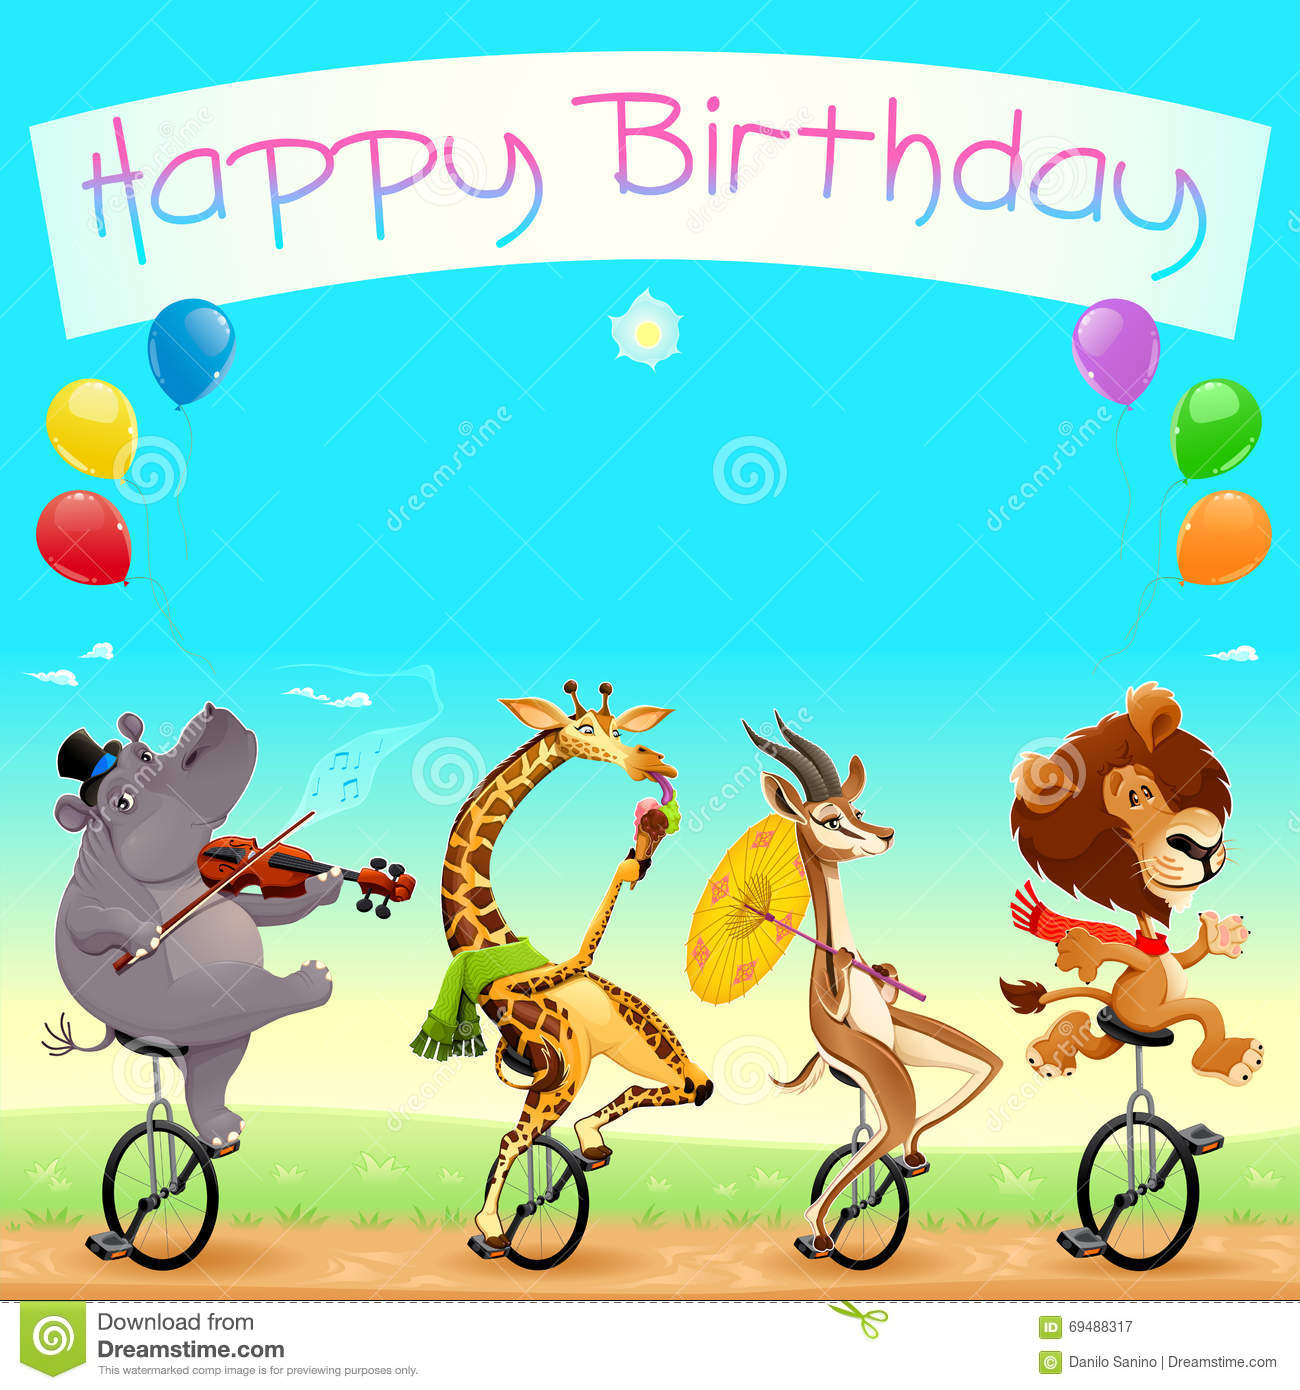 Happy Birthday Card With Funny Wild Animals On Unicycles